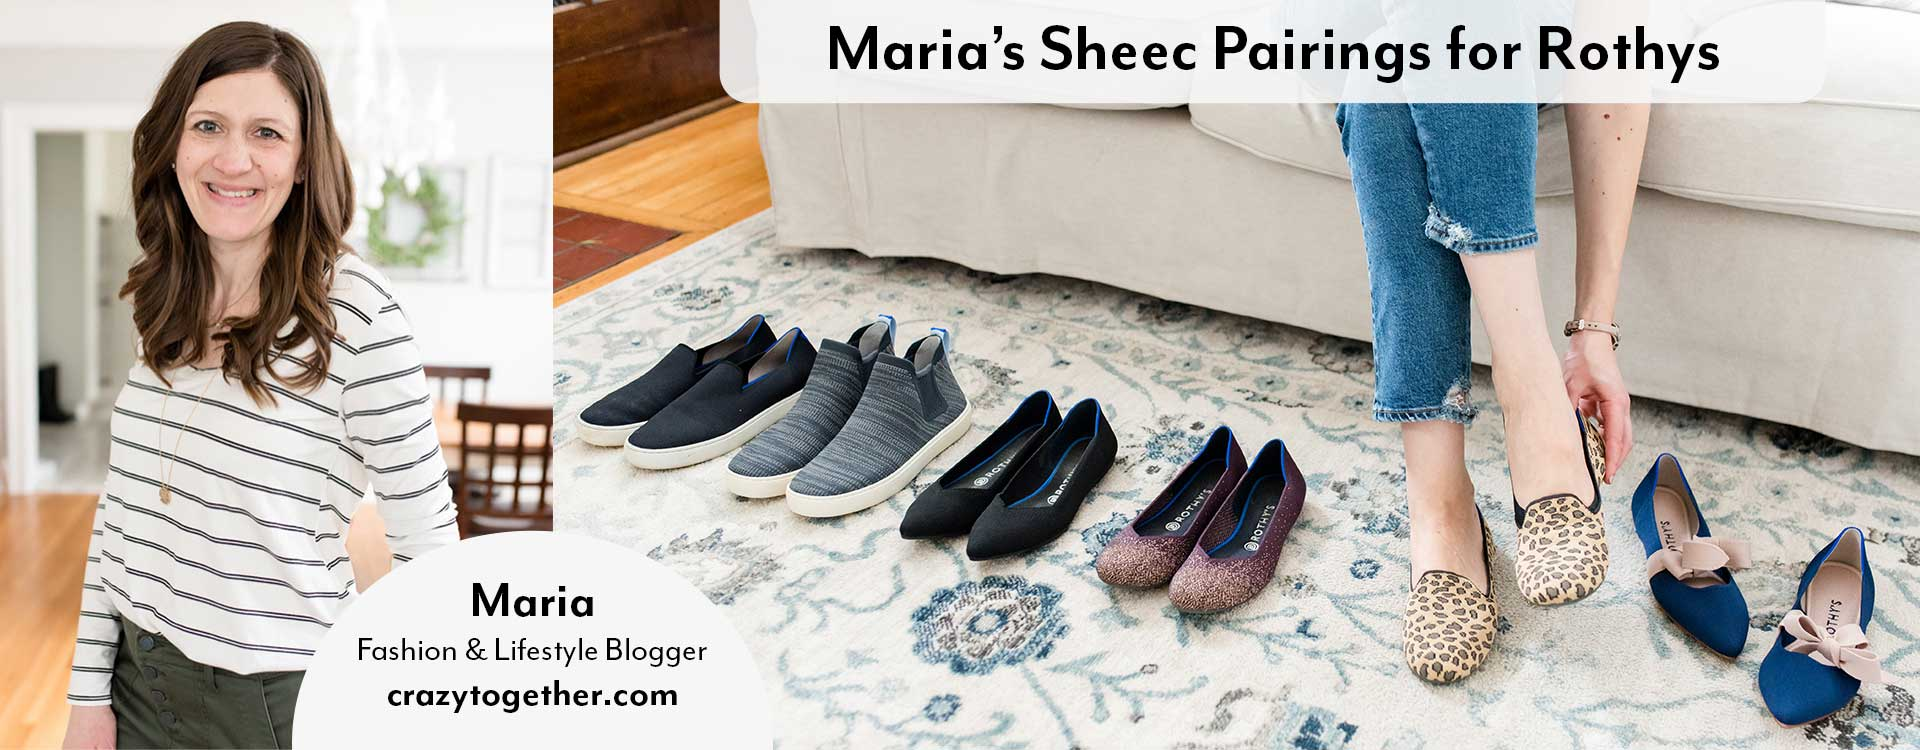 Maria's Sheec socks Pairings for Rothys